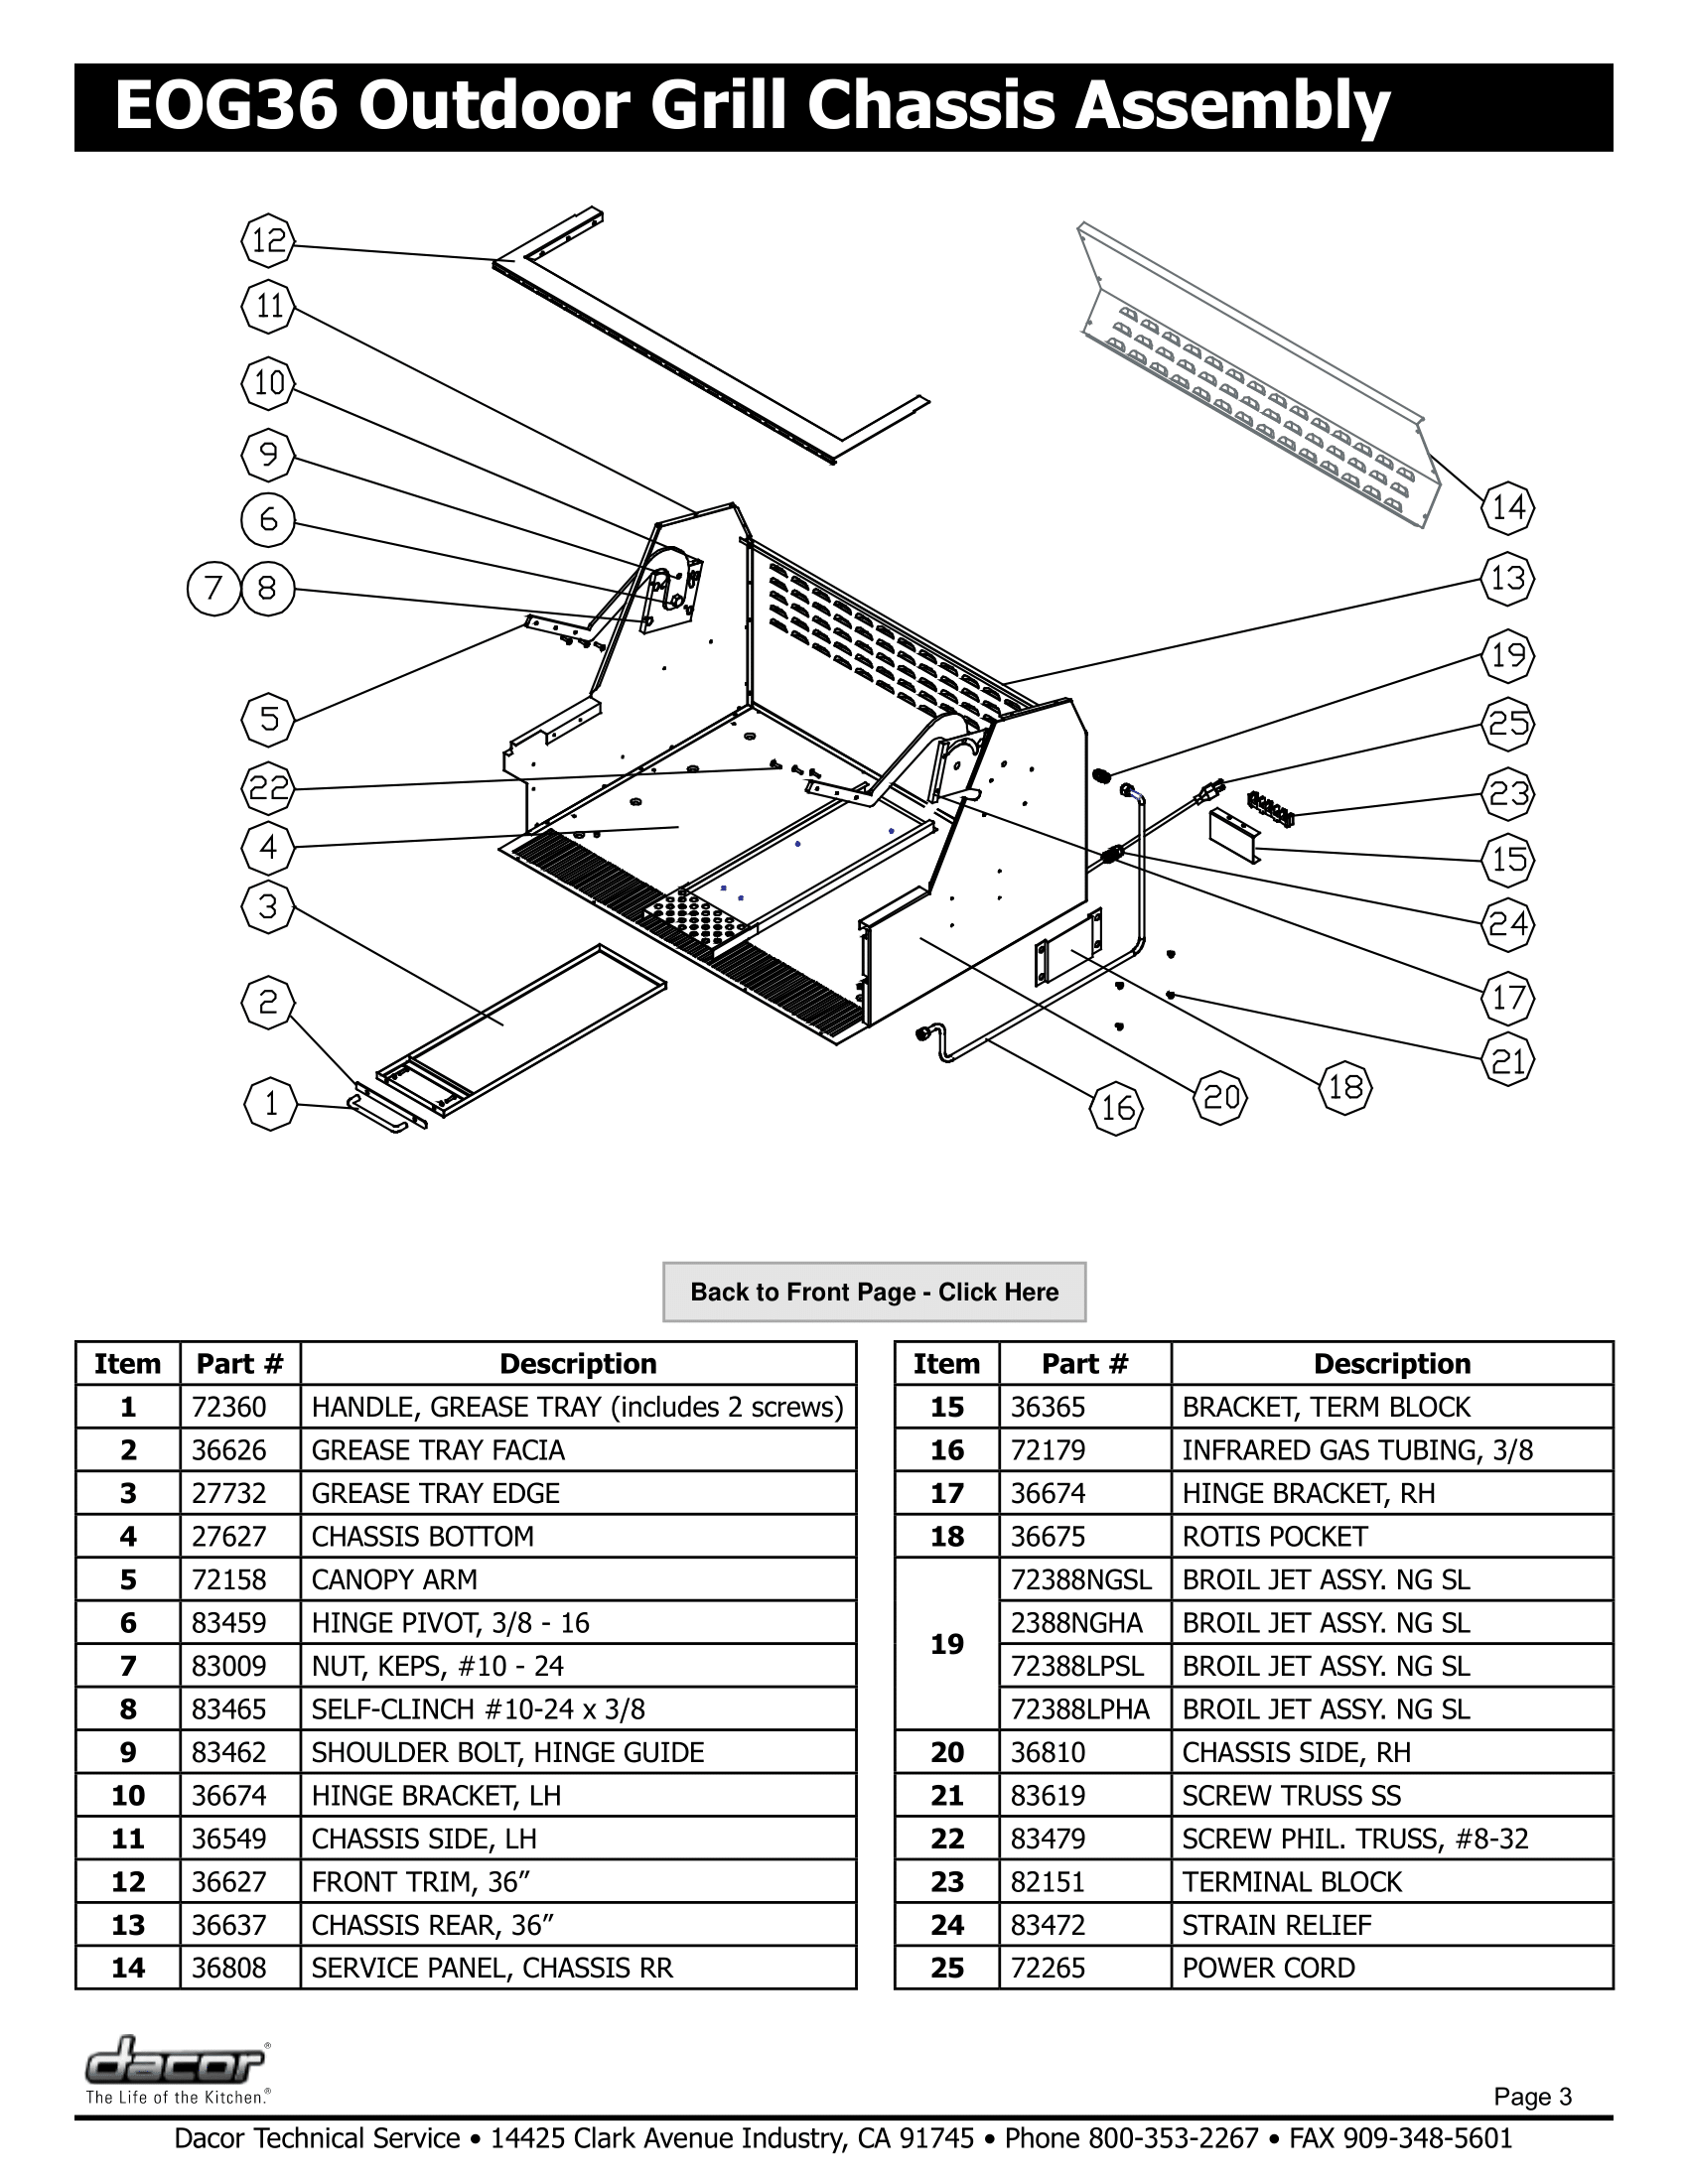 Dacor EOG36 Grill Chassis Assembly Schematics